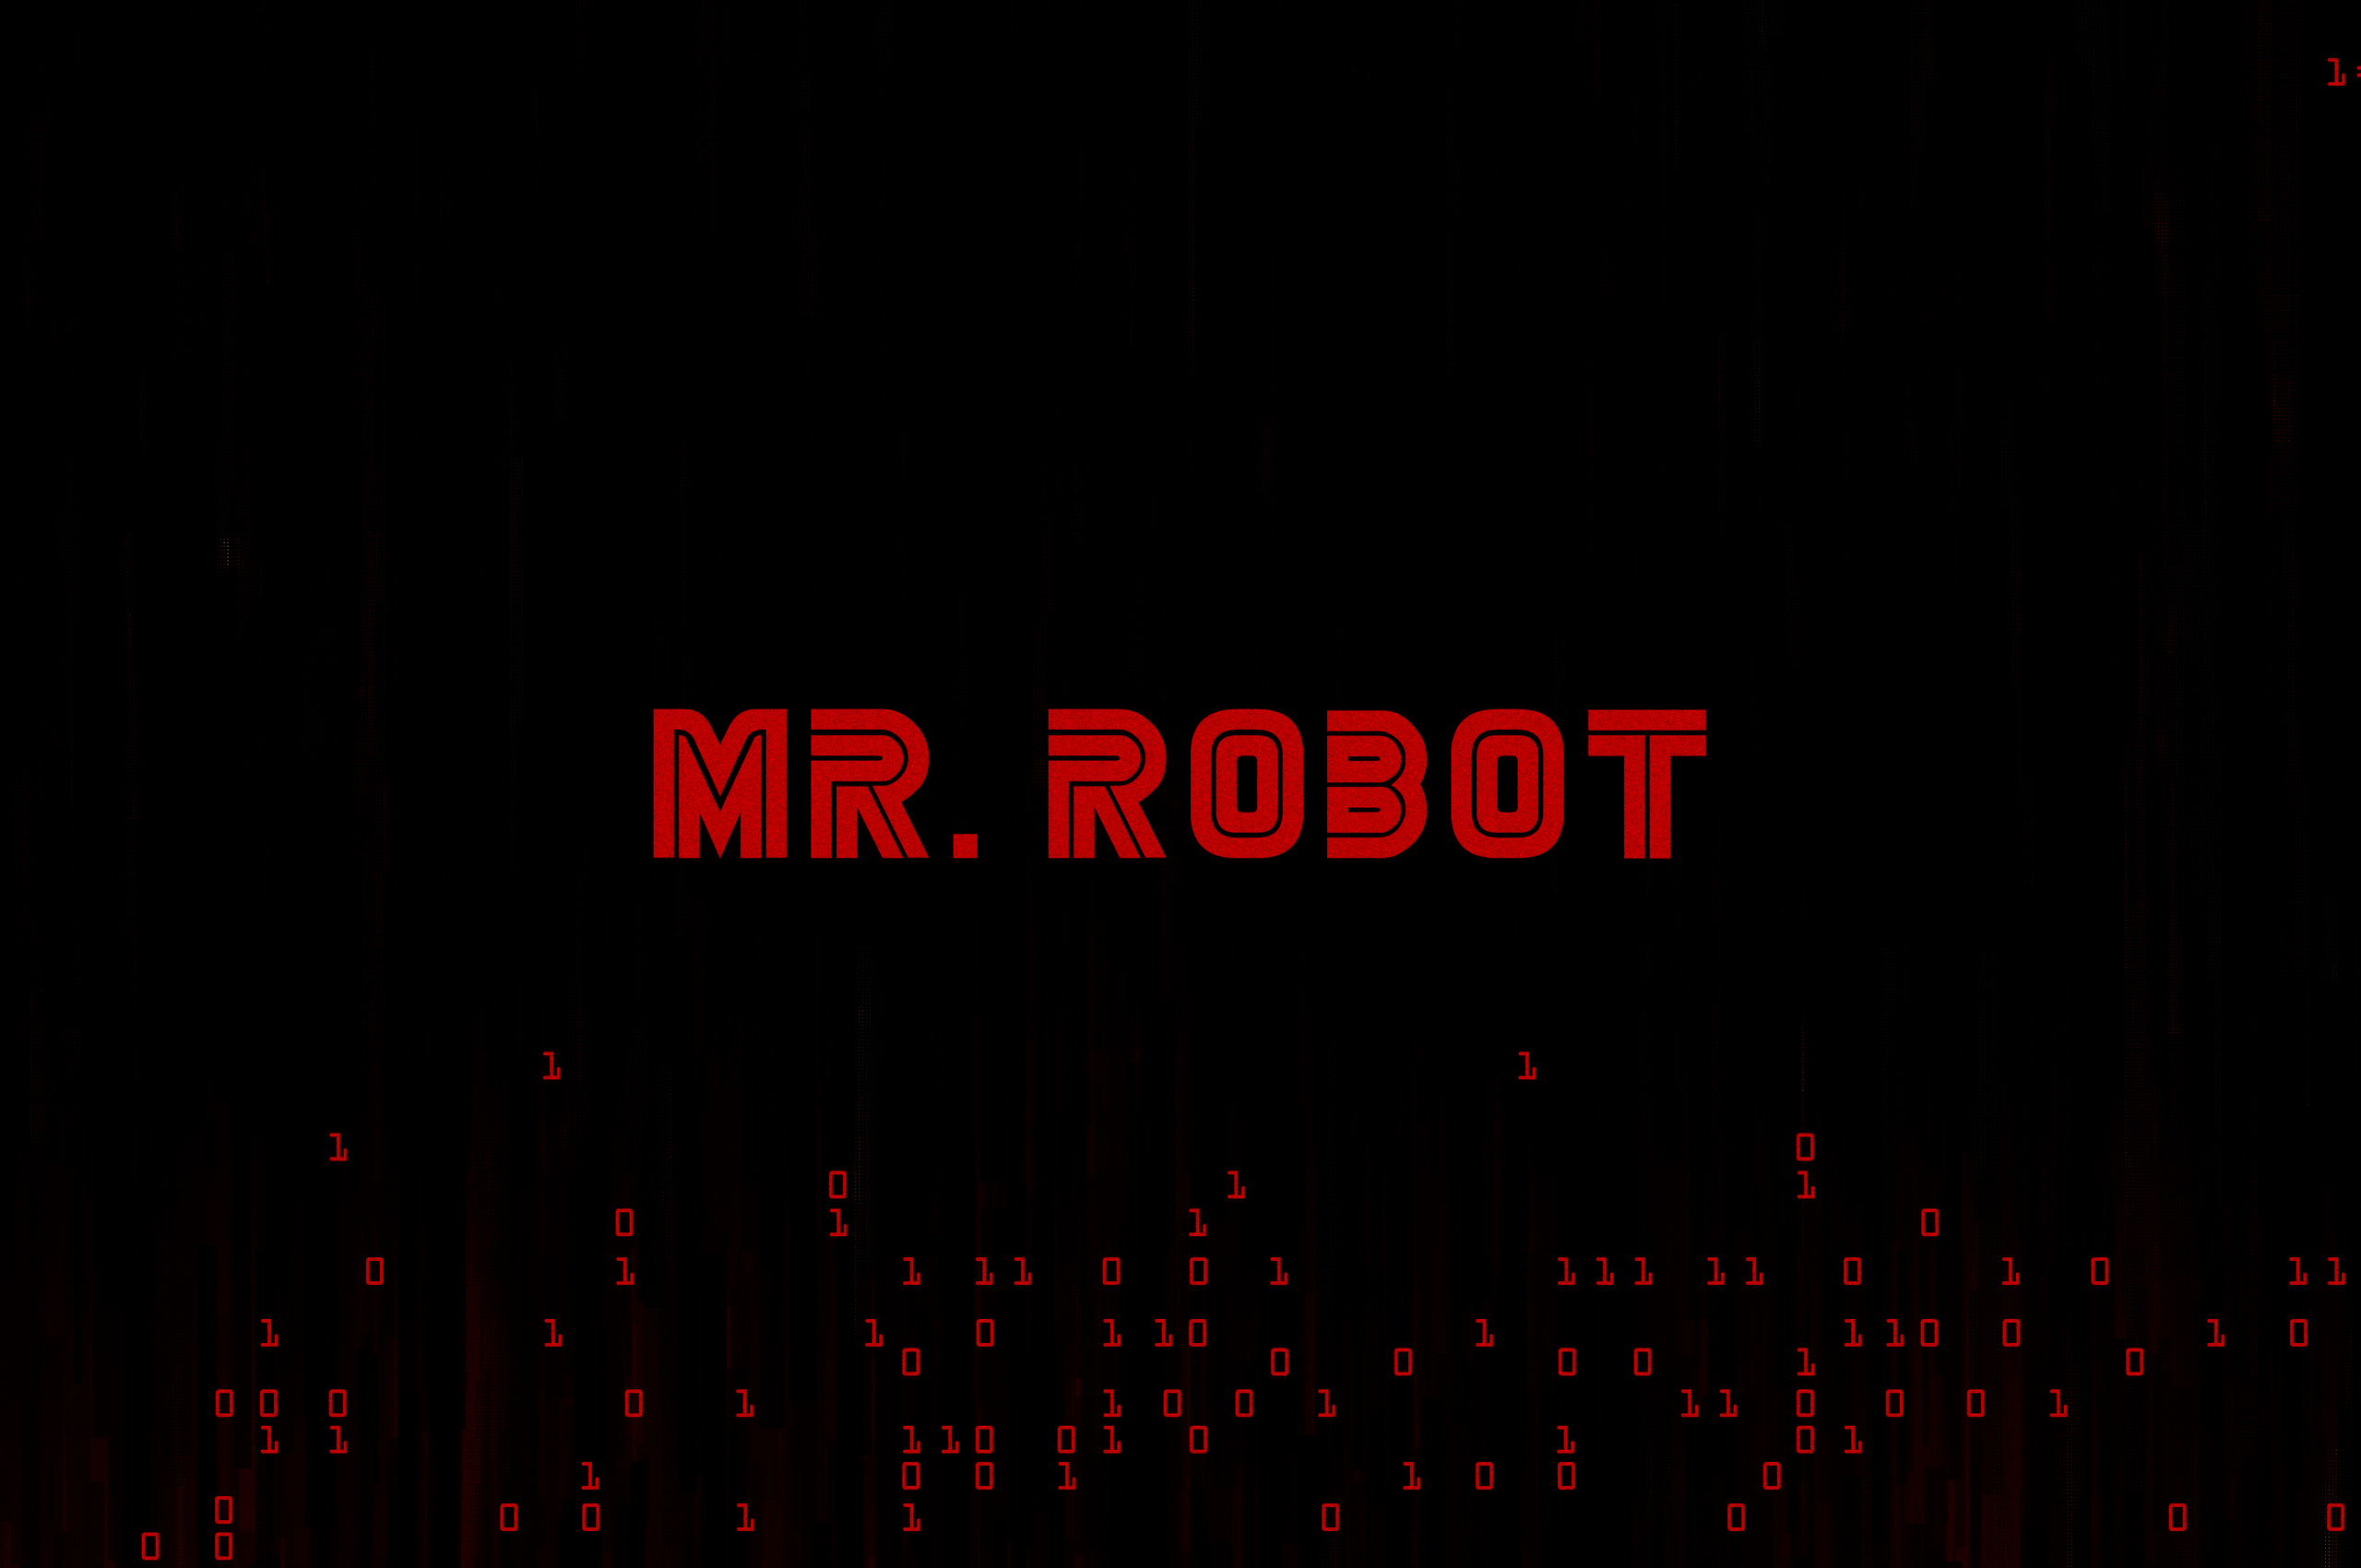 2560x1700 Mr Robot Logo 4k Chromebook Pixel Hd 4k Wallpapers